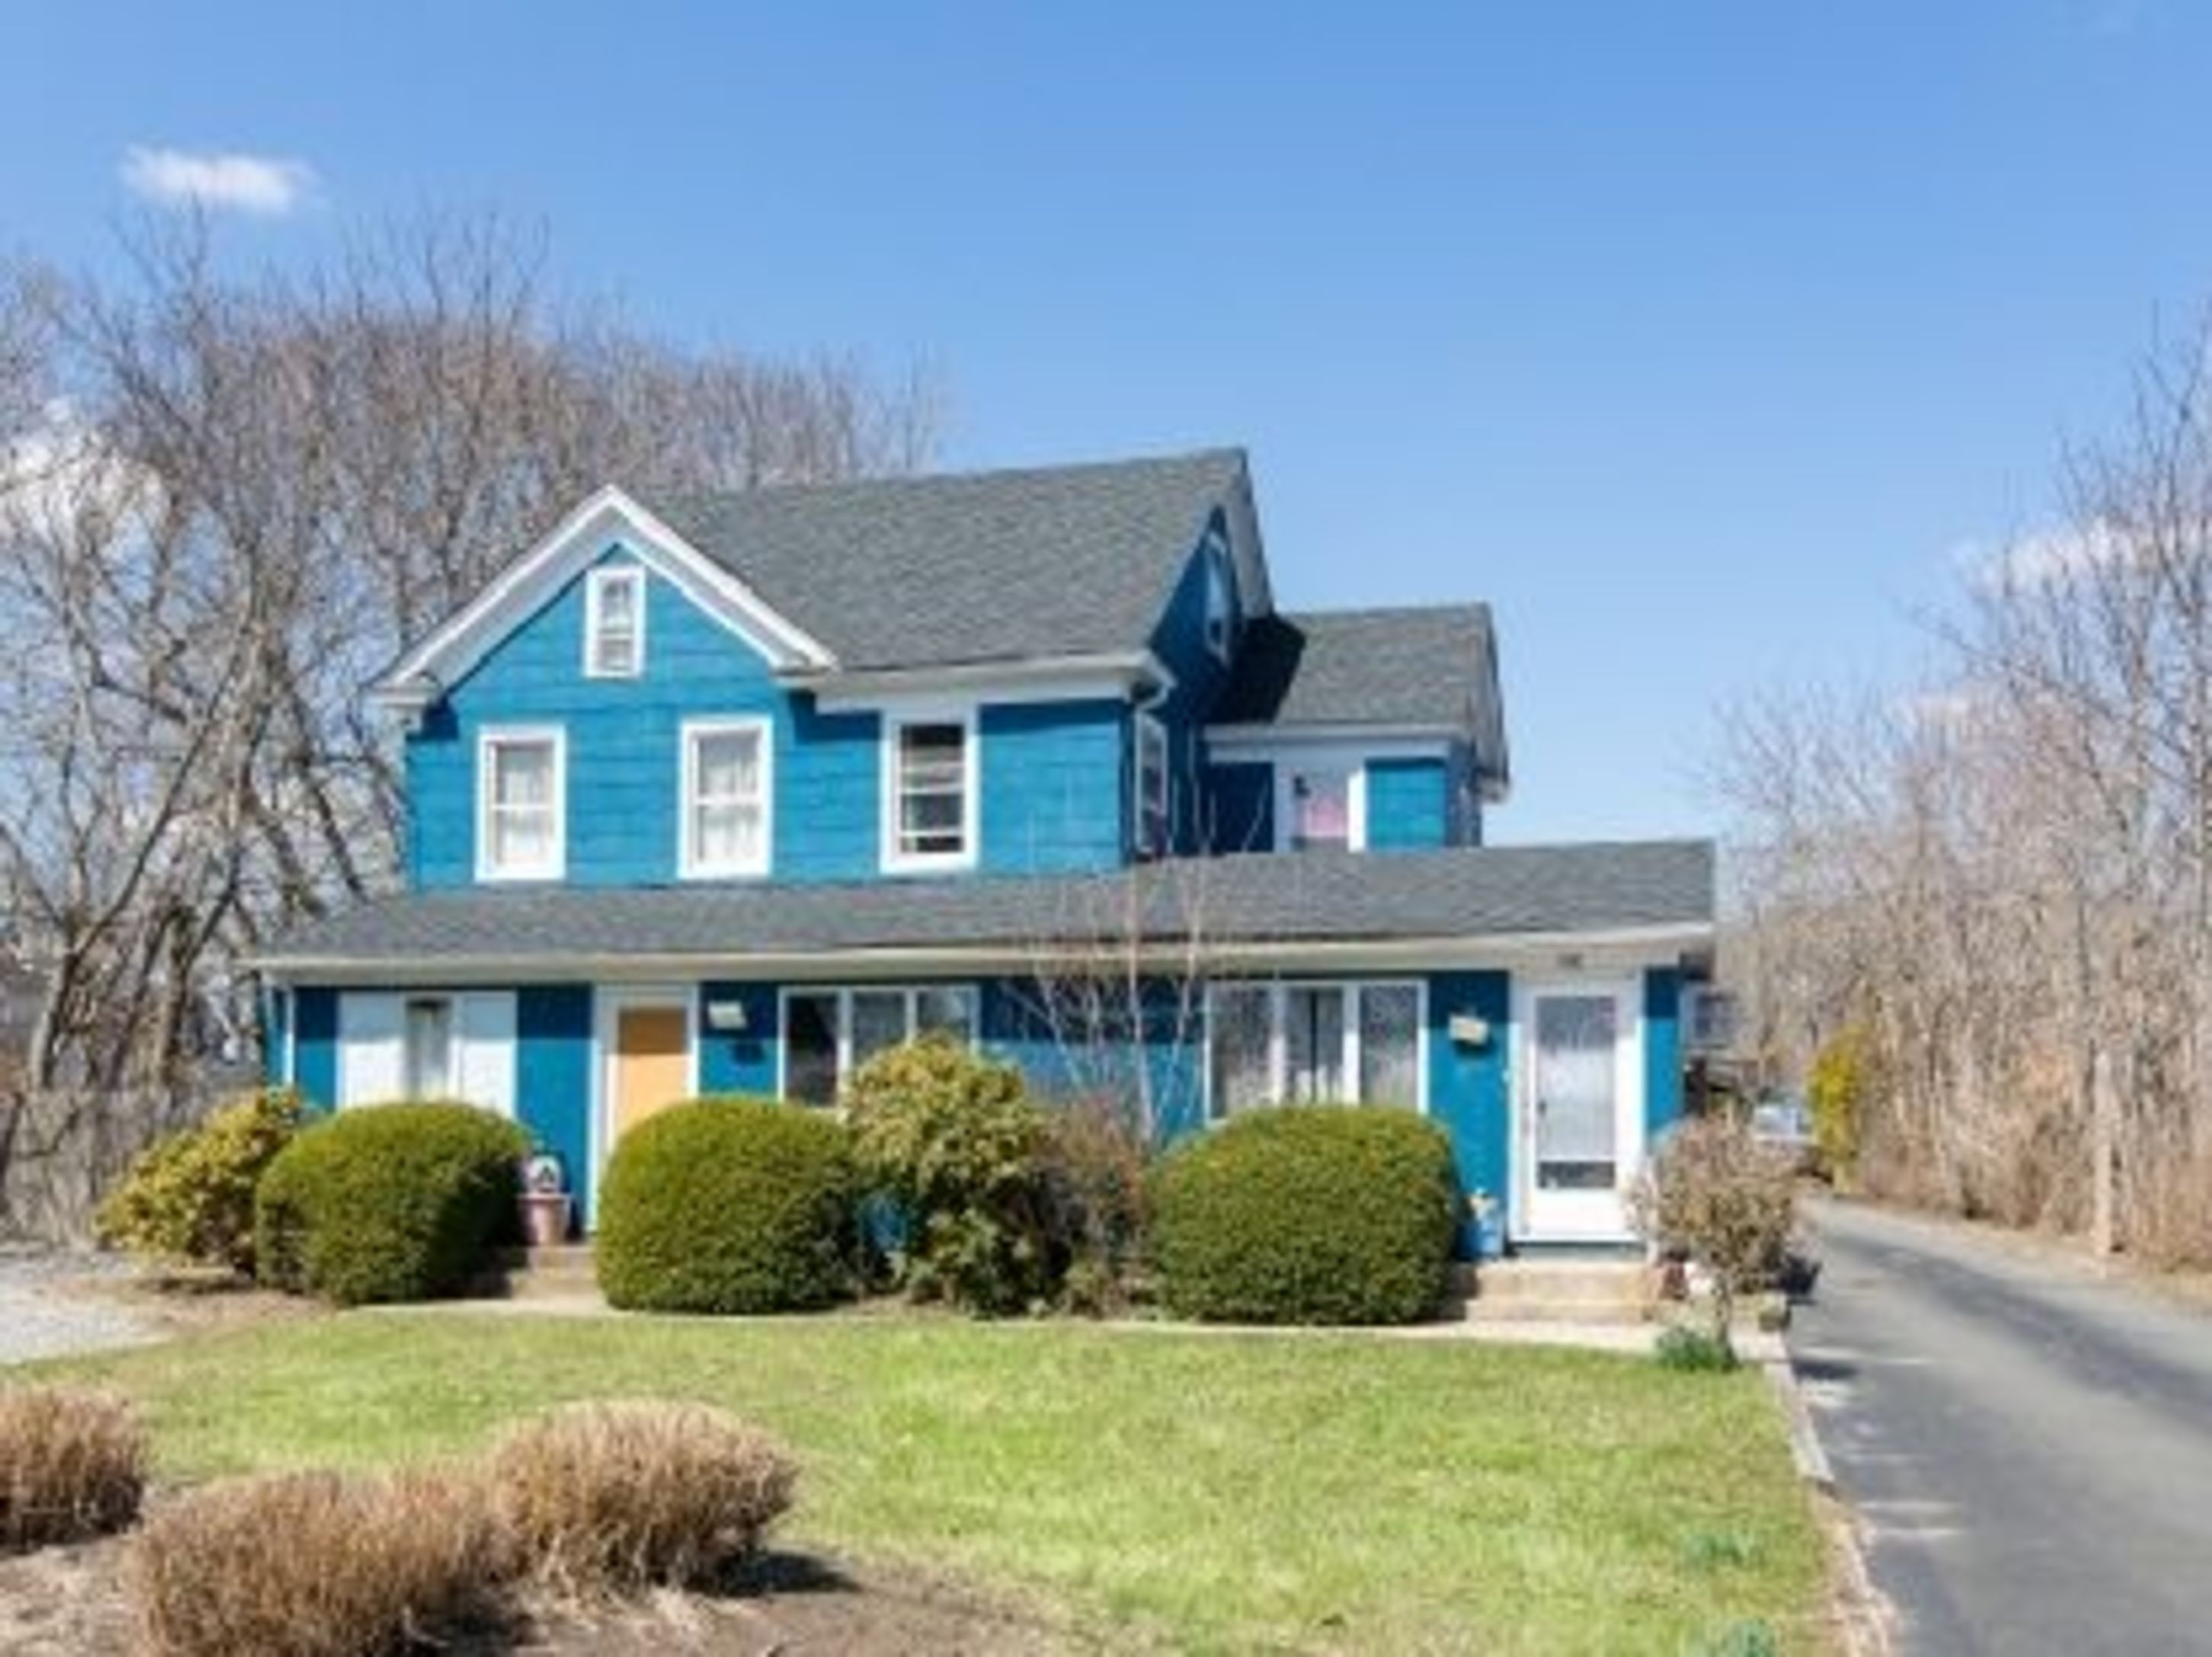 680 Montauk Hwy - East Quogue, New York